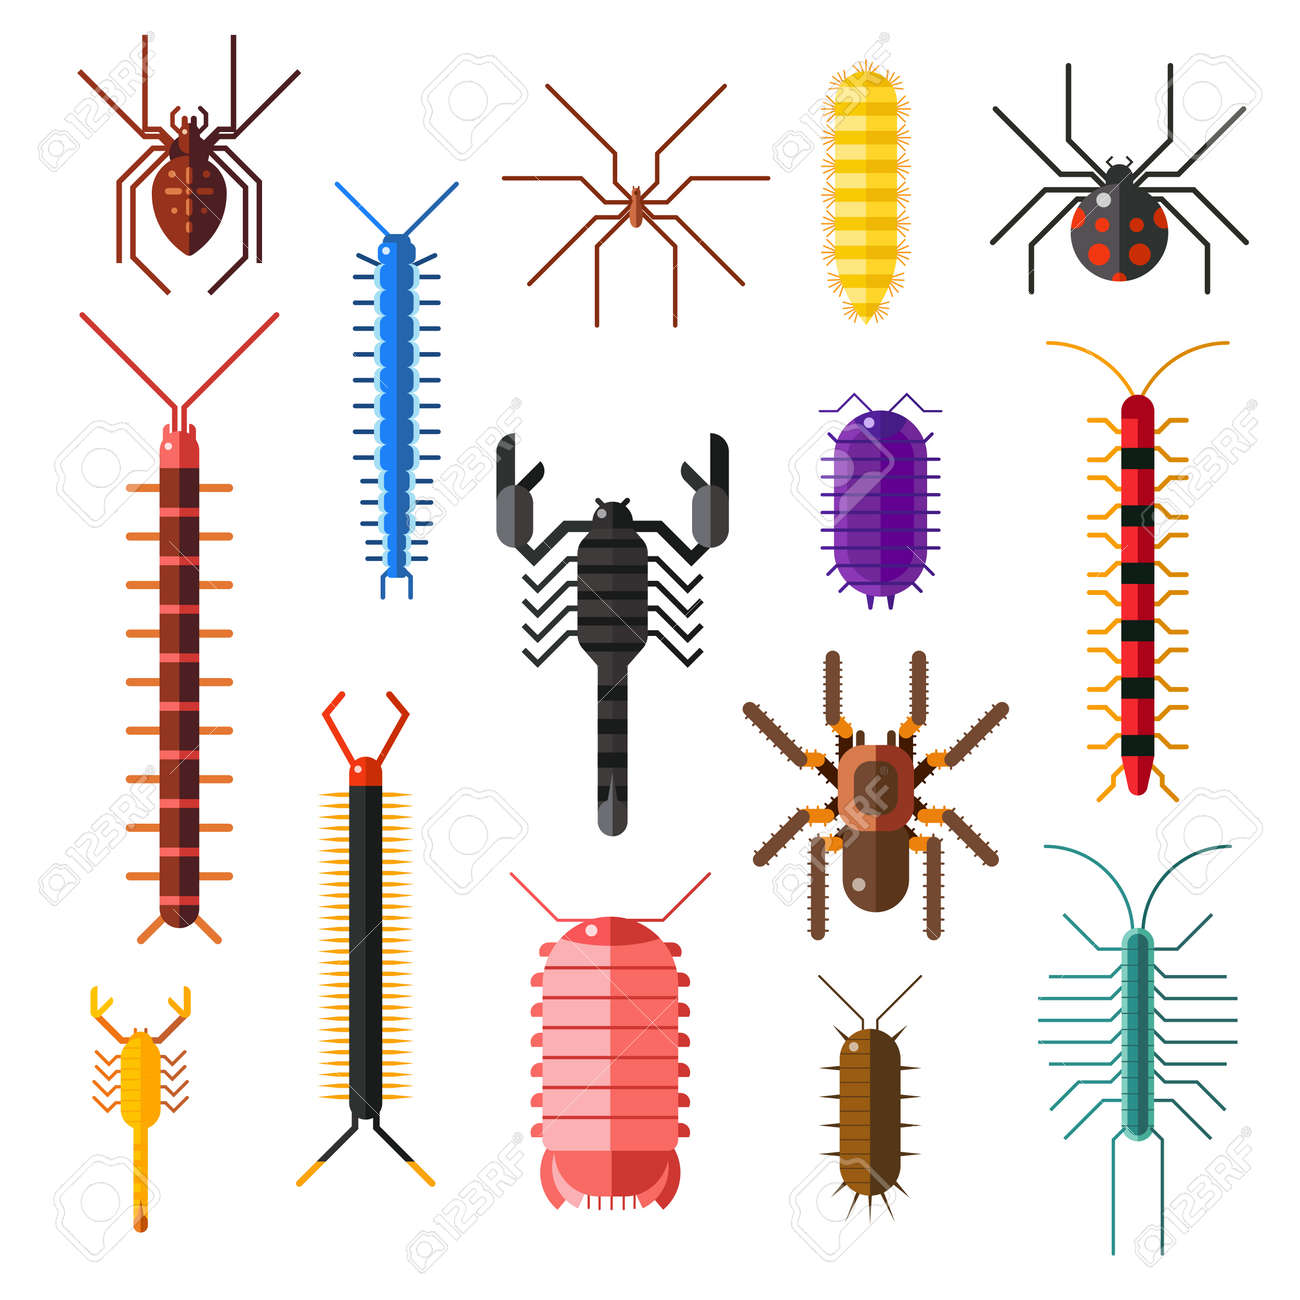 Spiders and scorpions dangerous insects animals vector cartoon